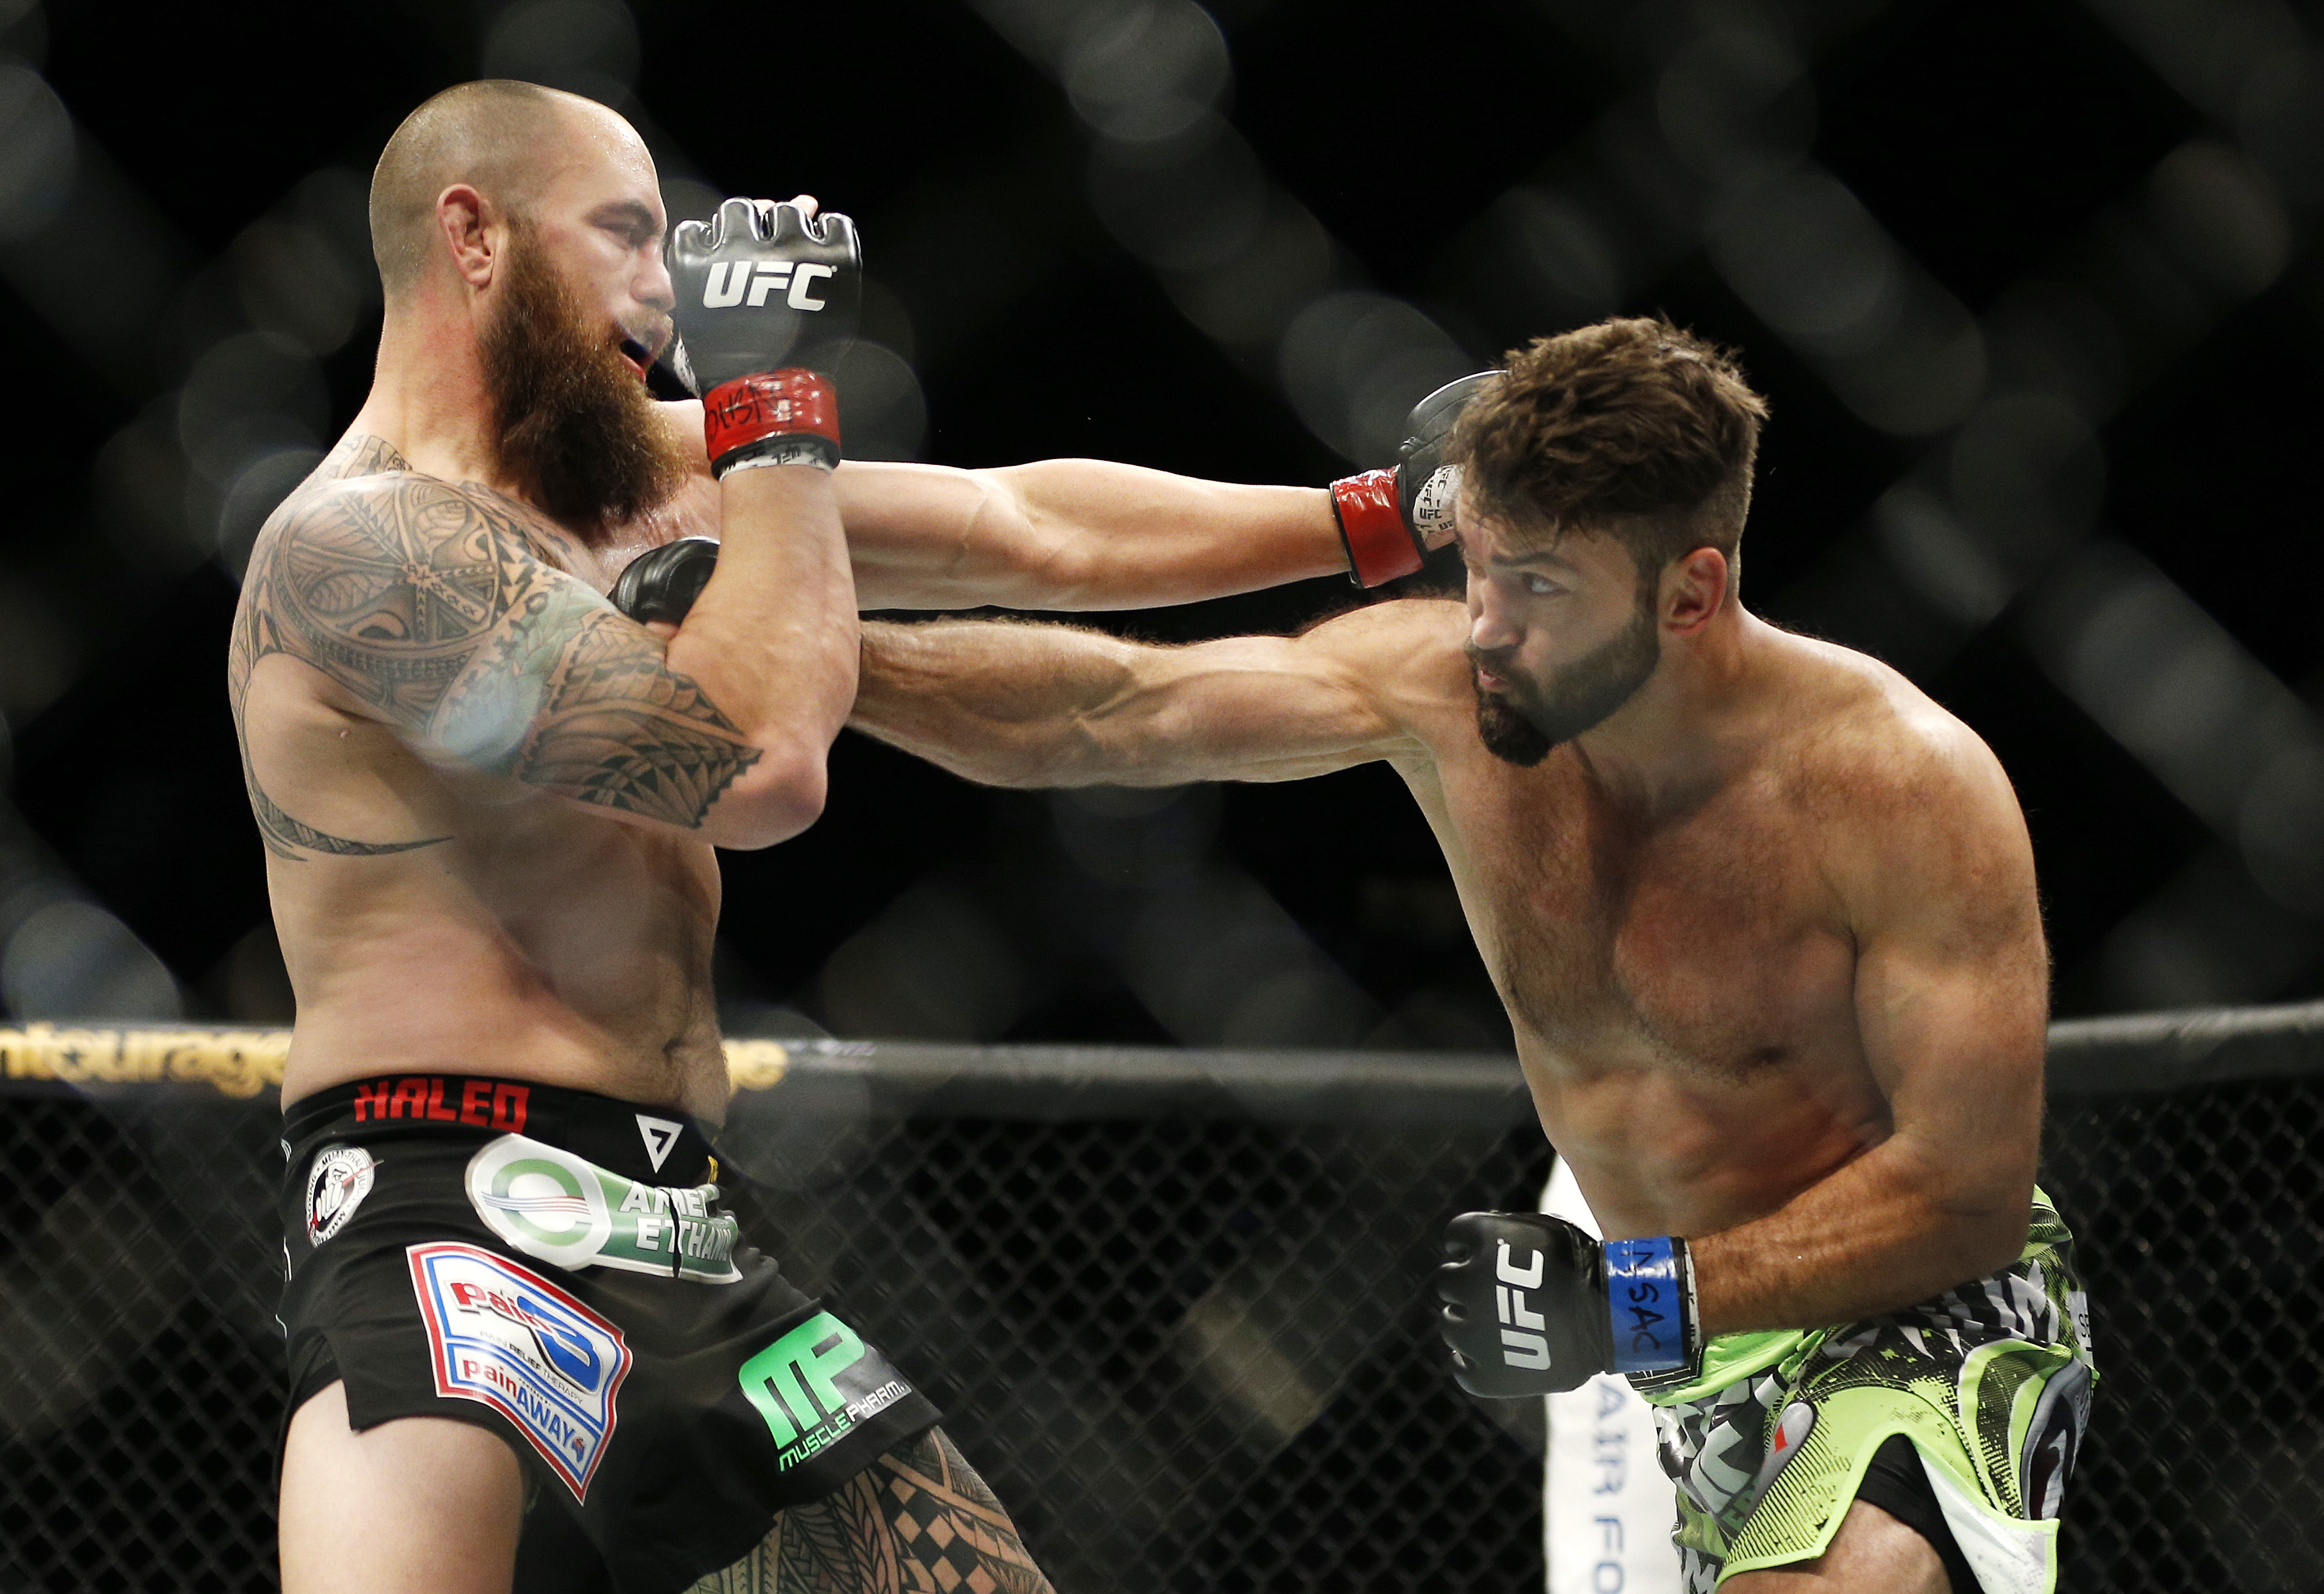 Andrei Arlovski (R) and Travis Browne trade blows during their heavyweight fight. (AP)